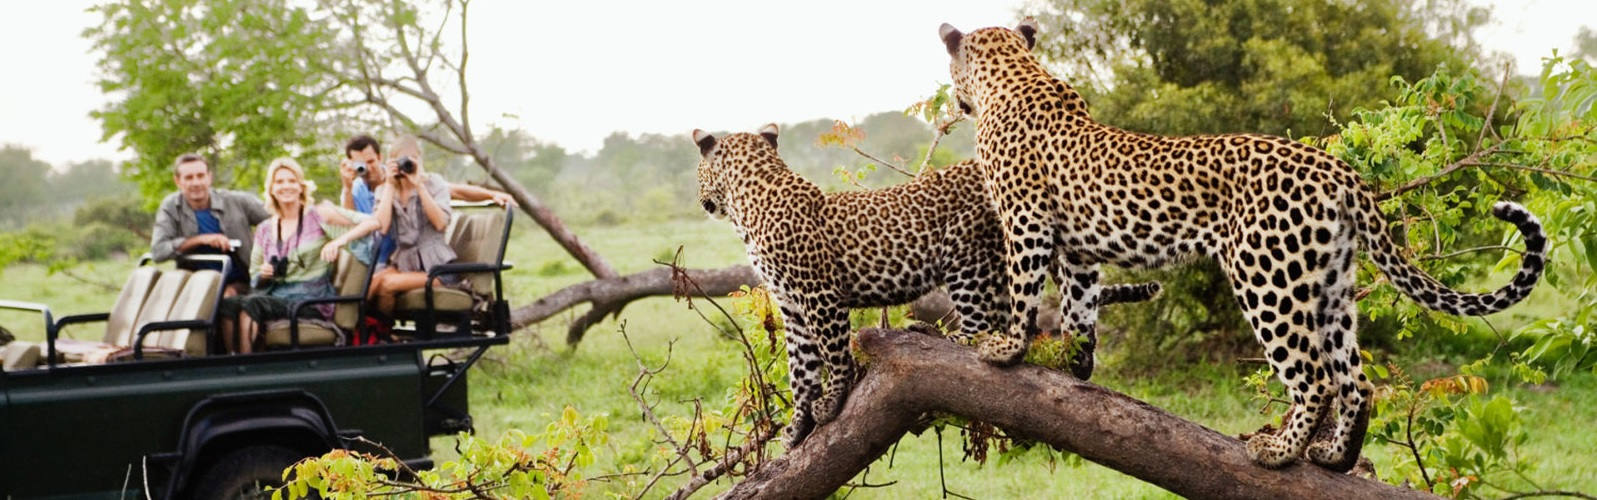 Leopard Viewing In Africa